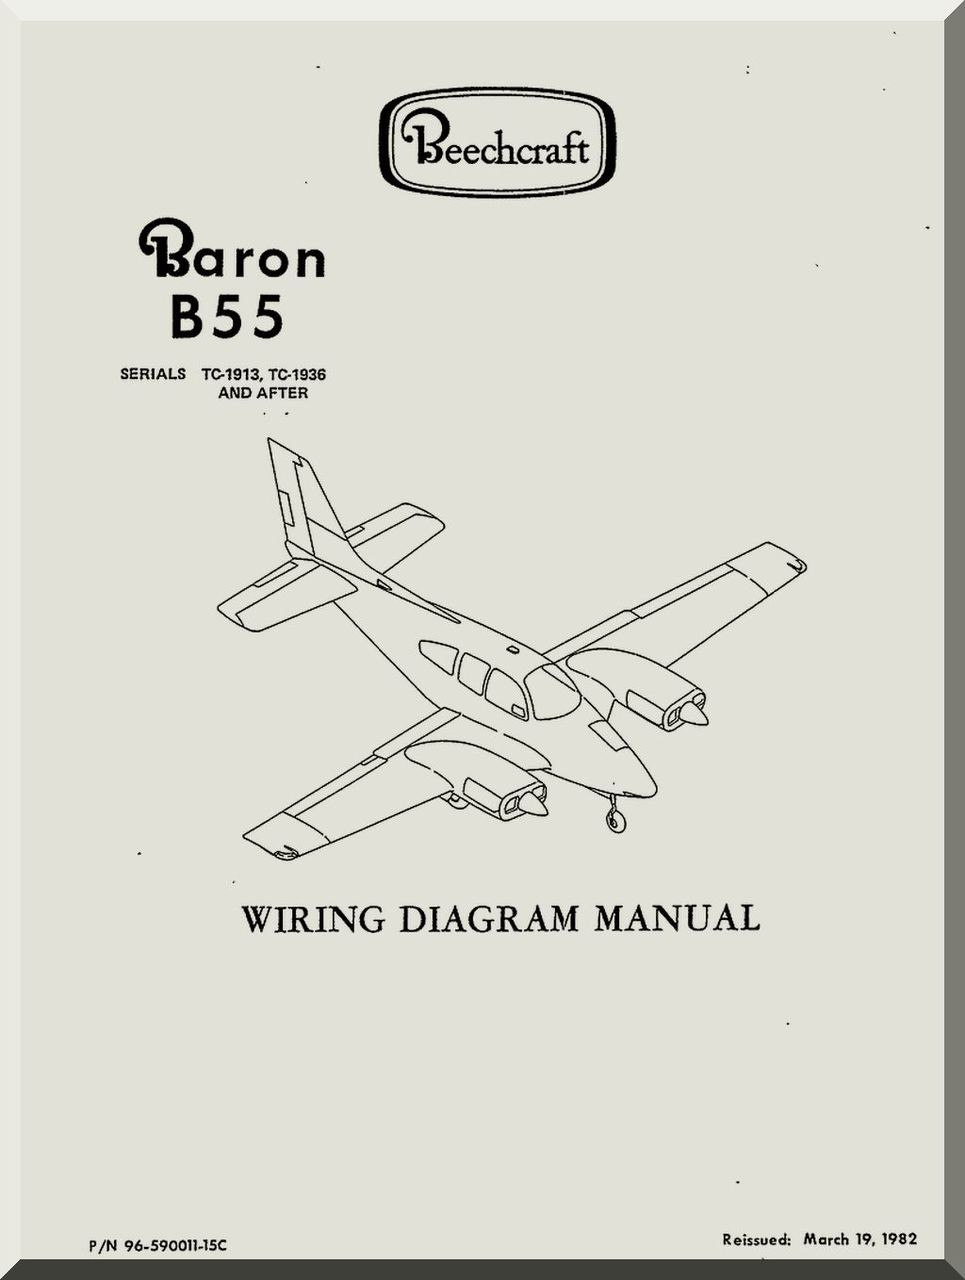 Beechcraft Baron B 55 Aircraft Wiring Diagram Manual